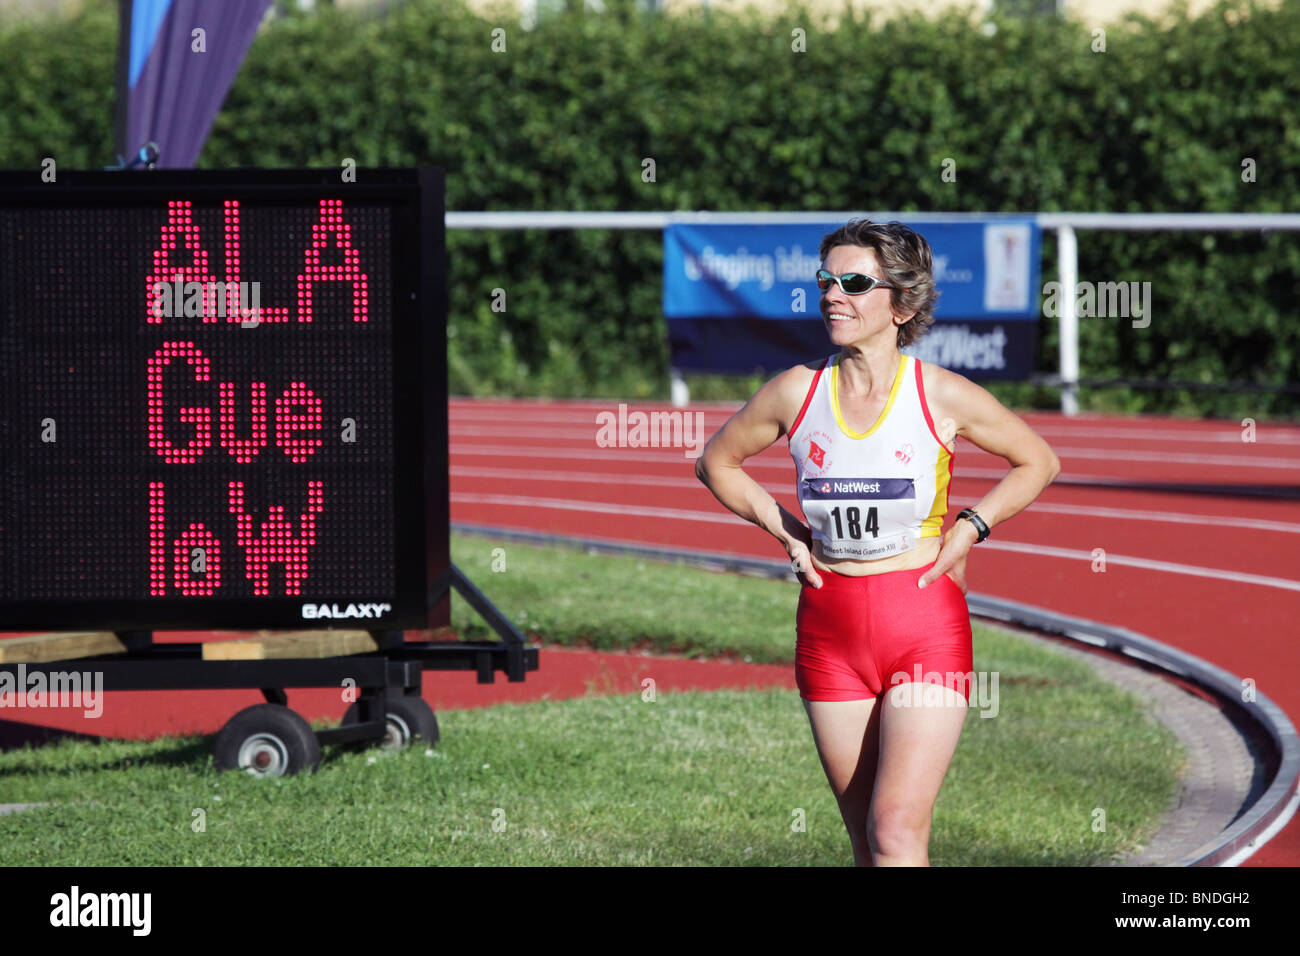 Gail Griffiths Isle of Man 45 year old 10000m Natwest Island Games 2009 at Wiklöf Holding Arena Mariehamn June - Stock Image